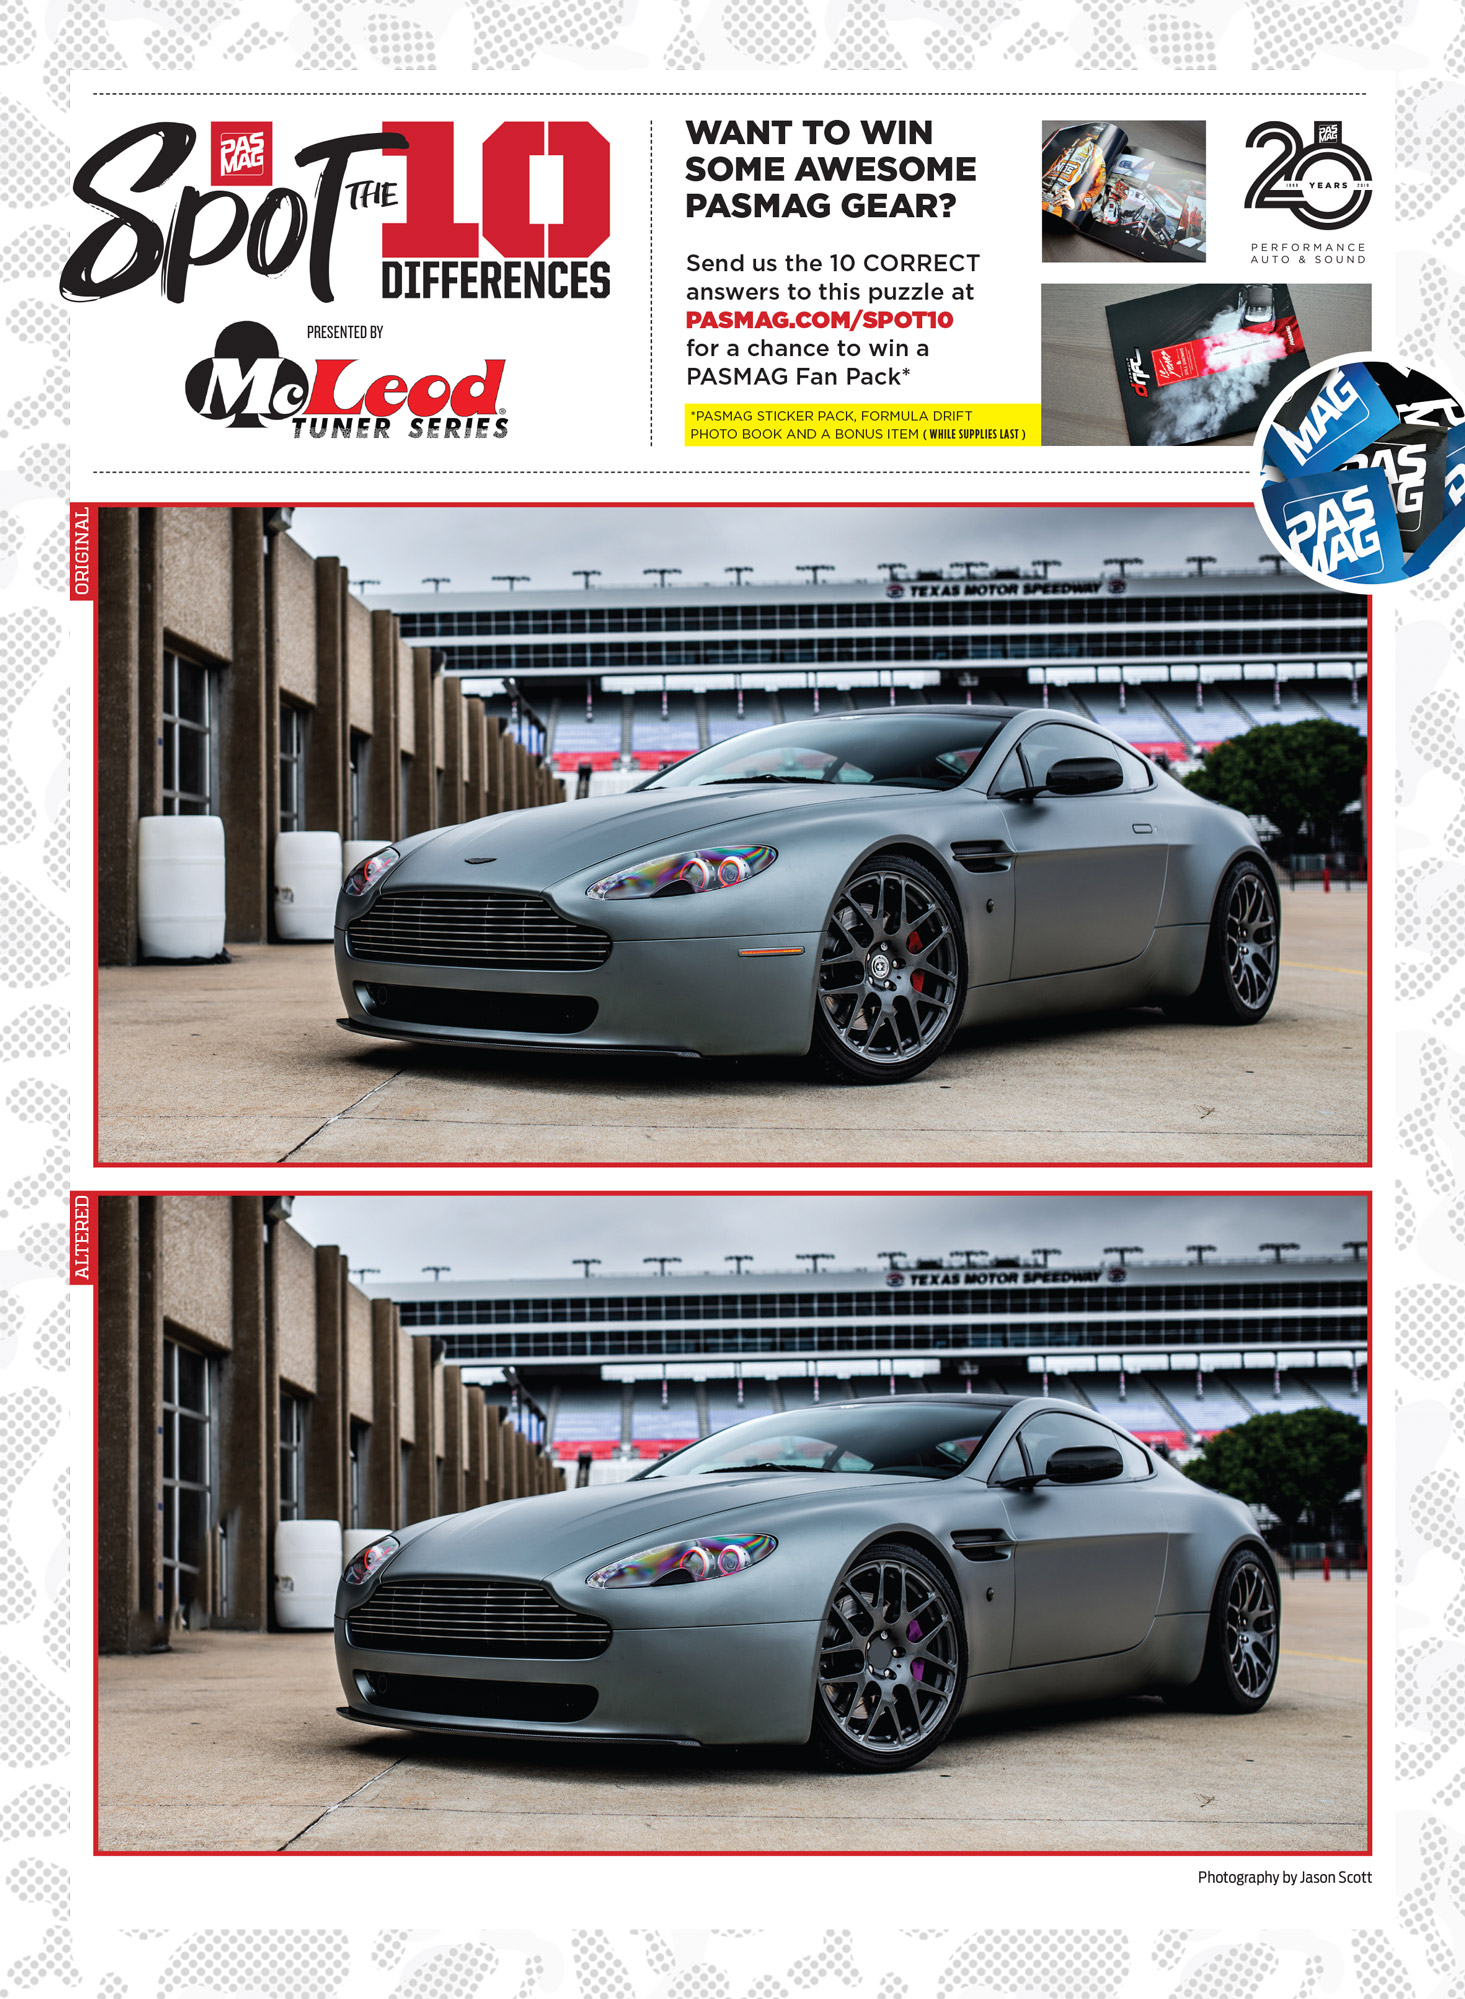 PASMAG Spot the Differences Apr 15 2020 Oracle Lighting Aston Martin ESX Supervantage